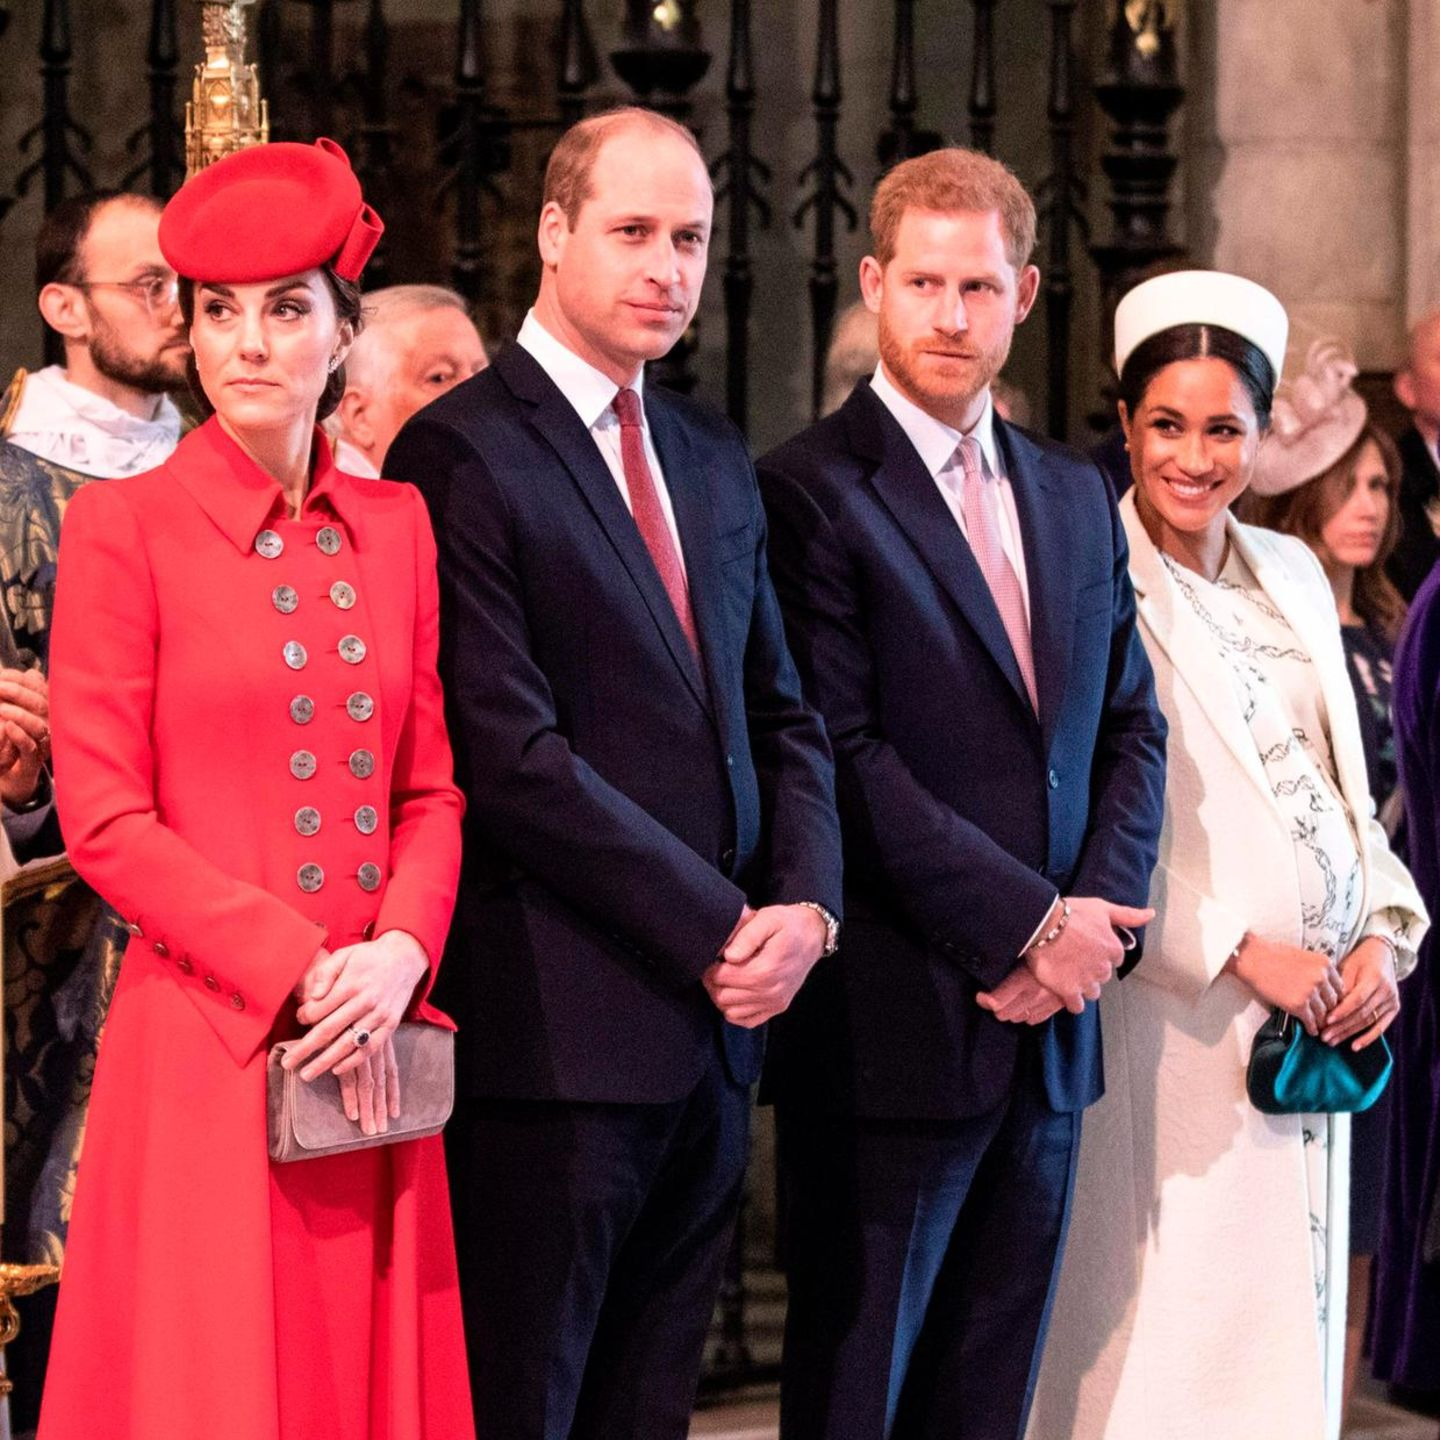 Herzogin Catherine, Prinz William, Prinz Harry, Herzogin Meghan